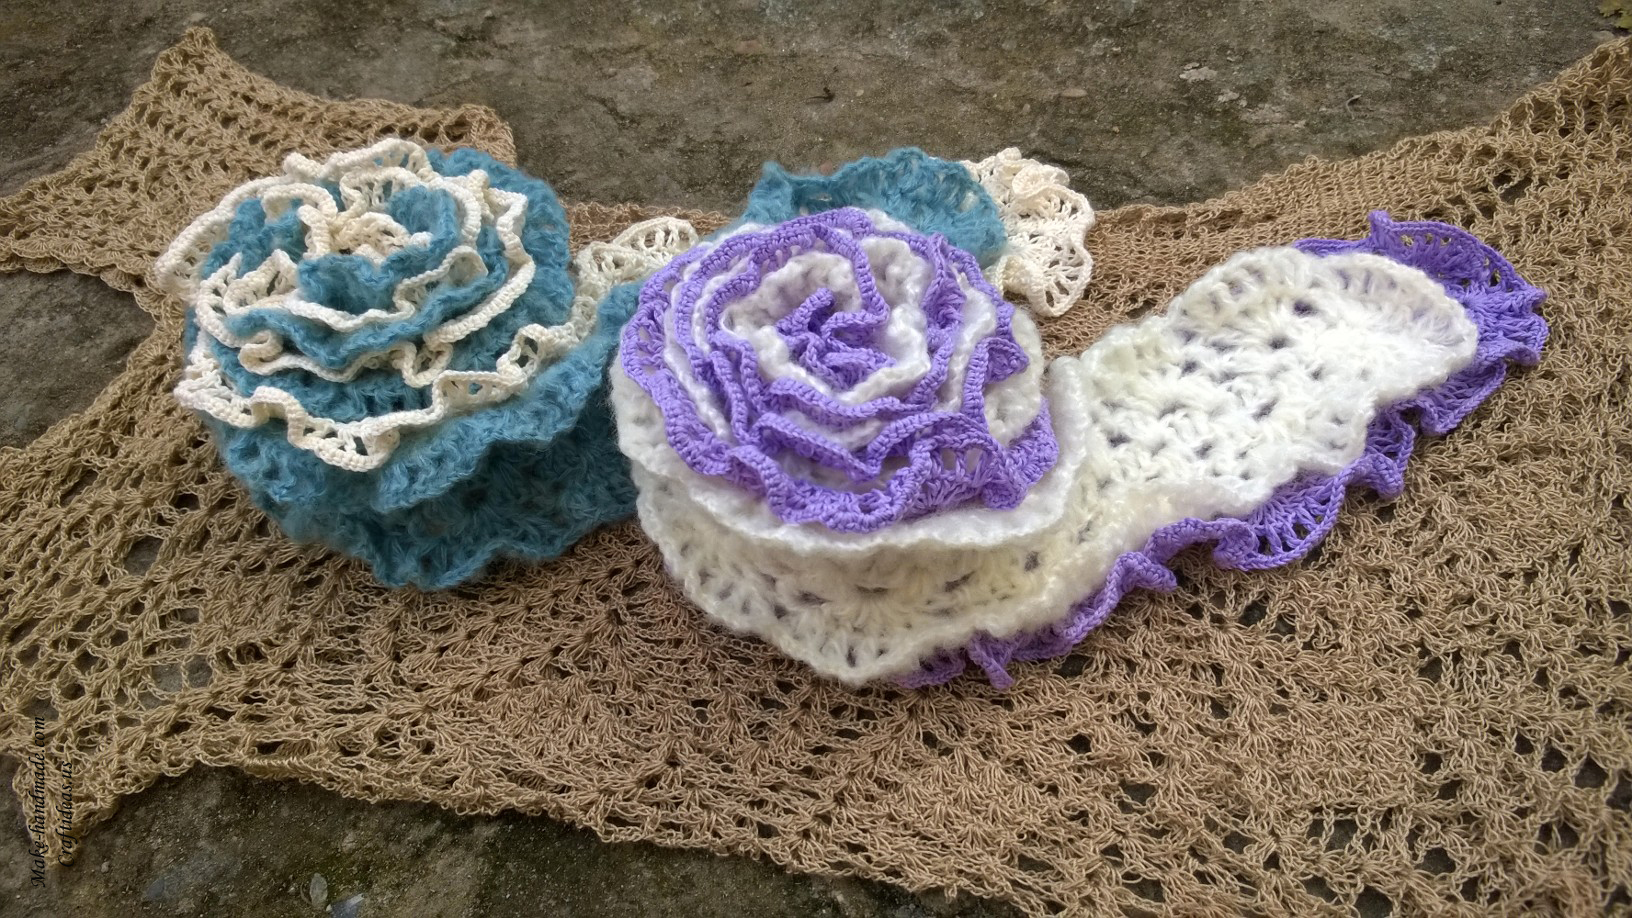 Crocheting Ideas : Crochet lace charming scarf ideas - Craft Ideas